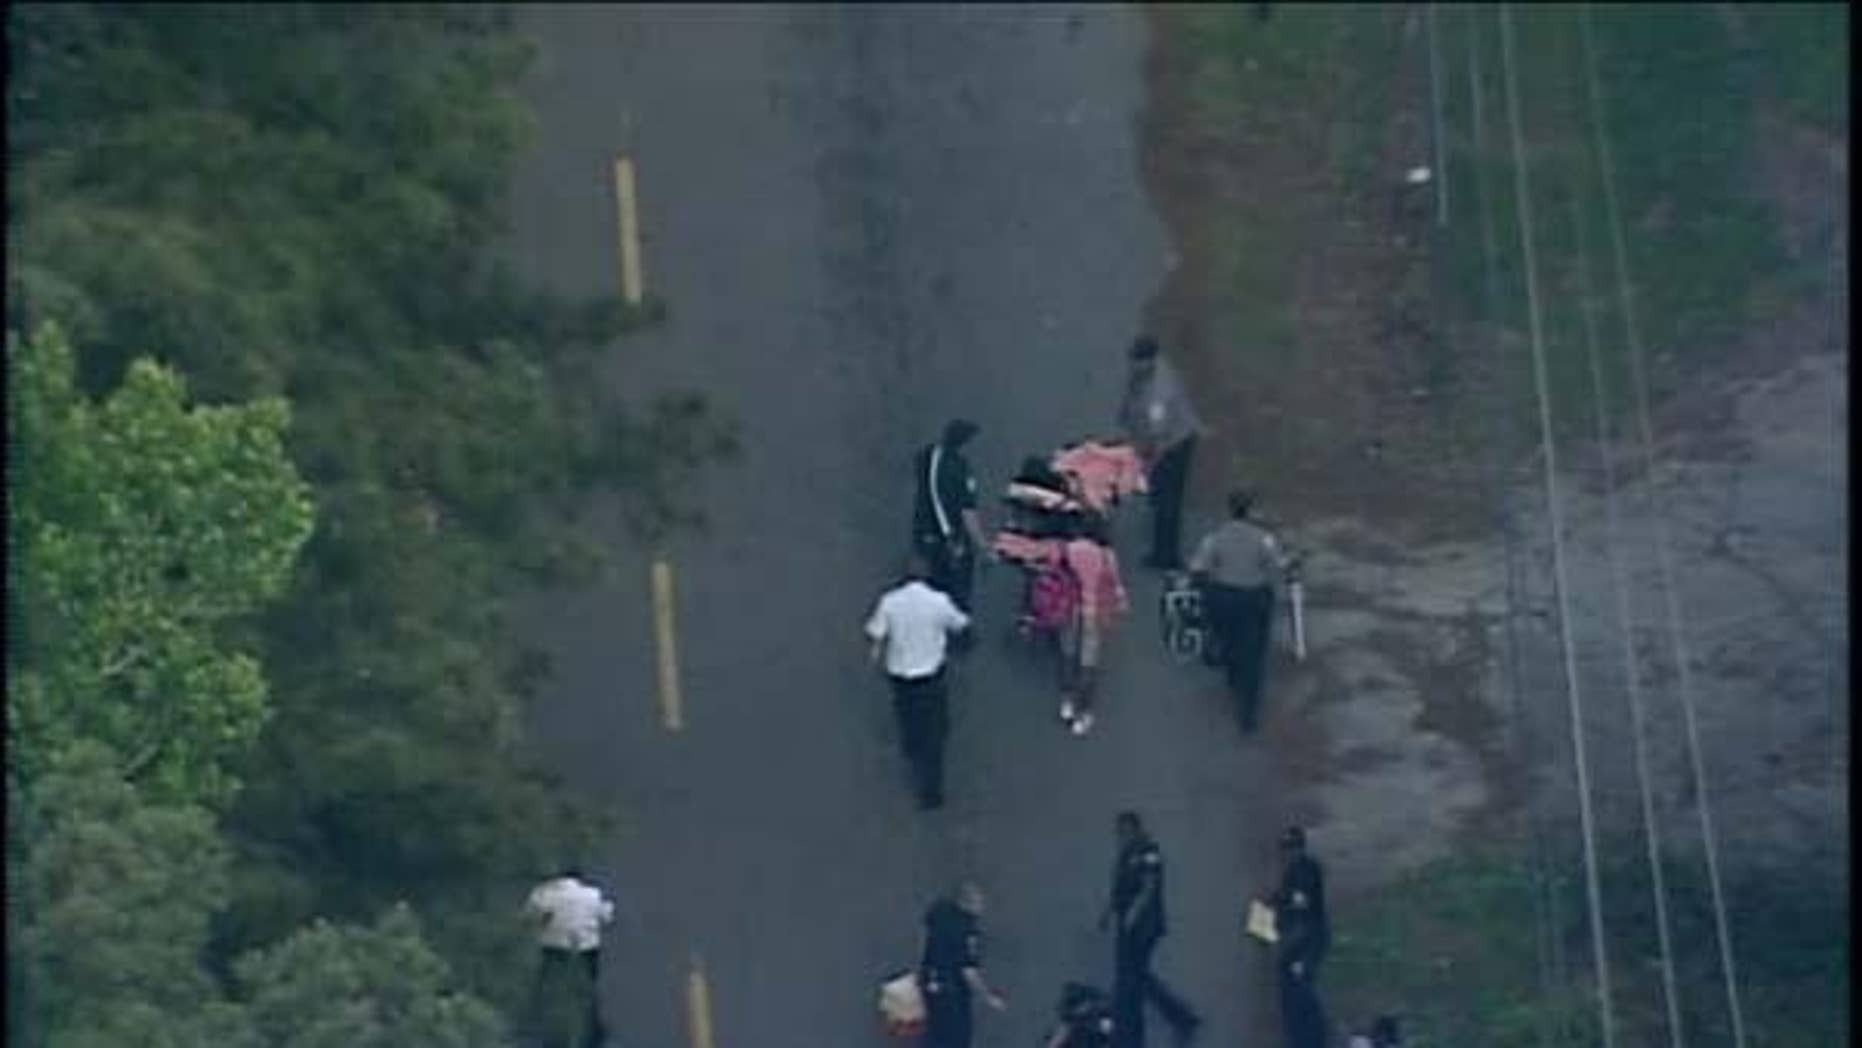 May 13, 2014: Emergency personnel take away a shooting victim on a stretcher outside Therrell High School. (MyFoxAtlanta.com)